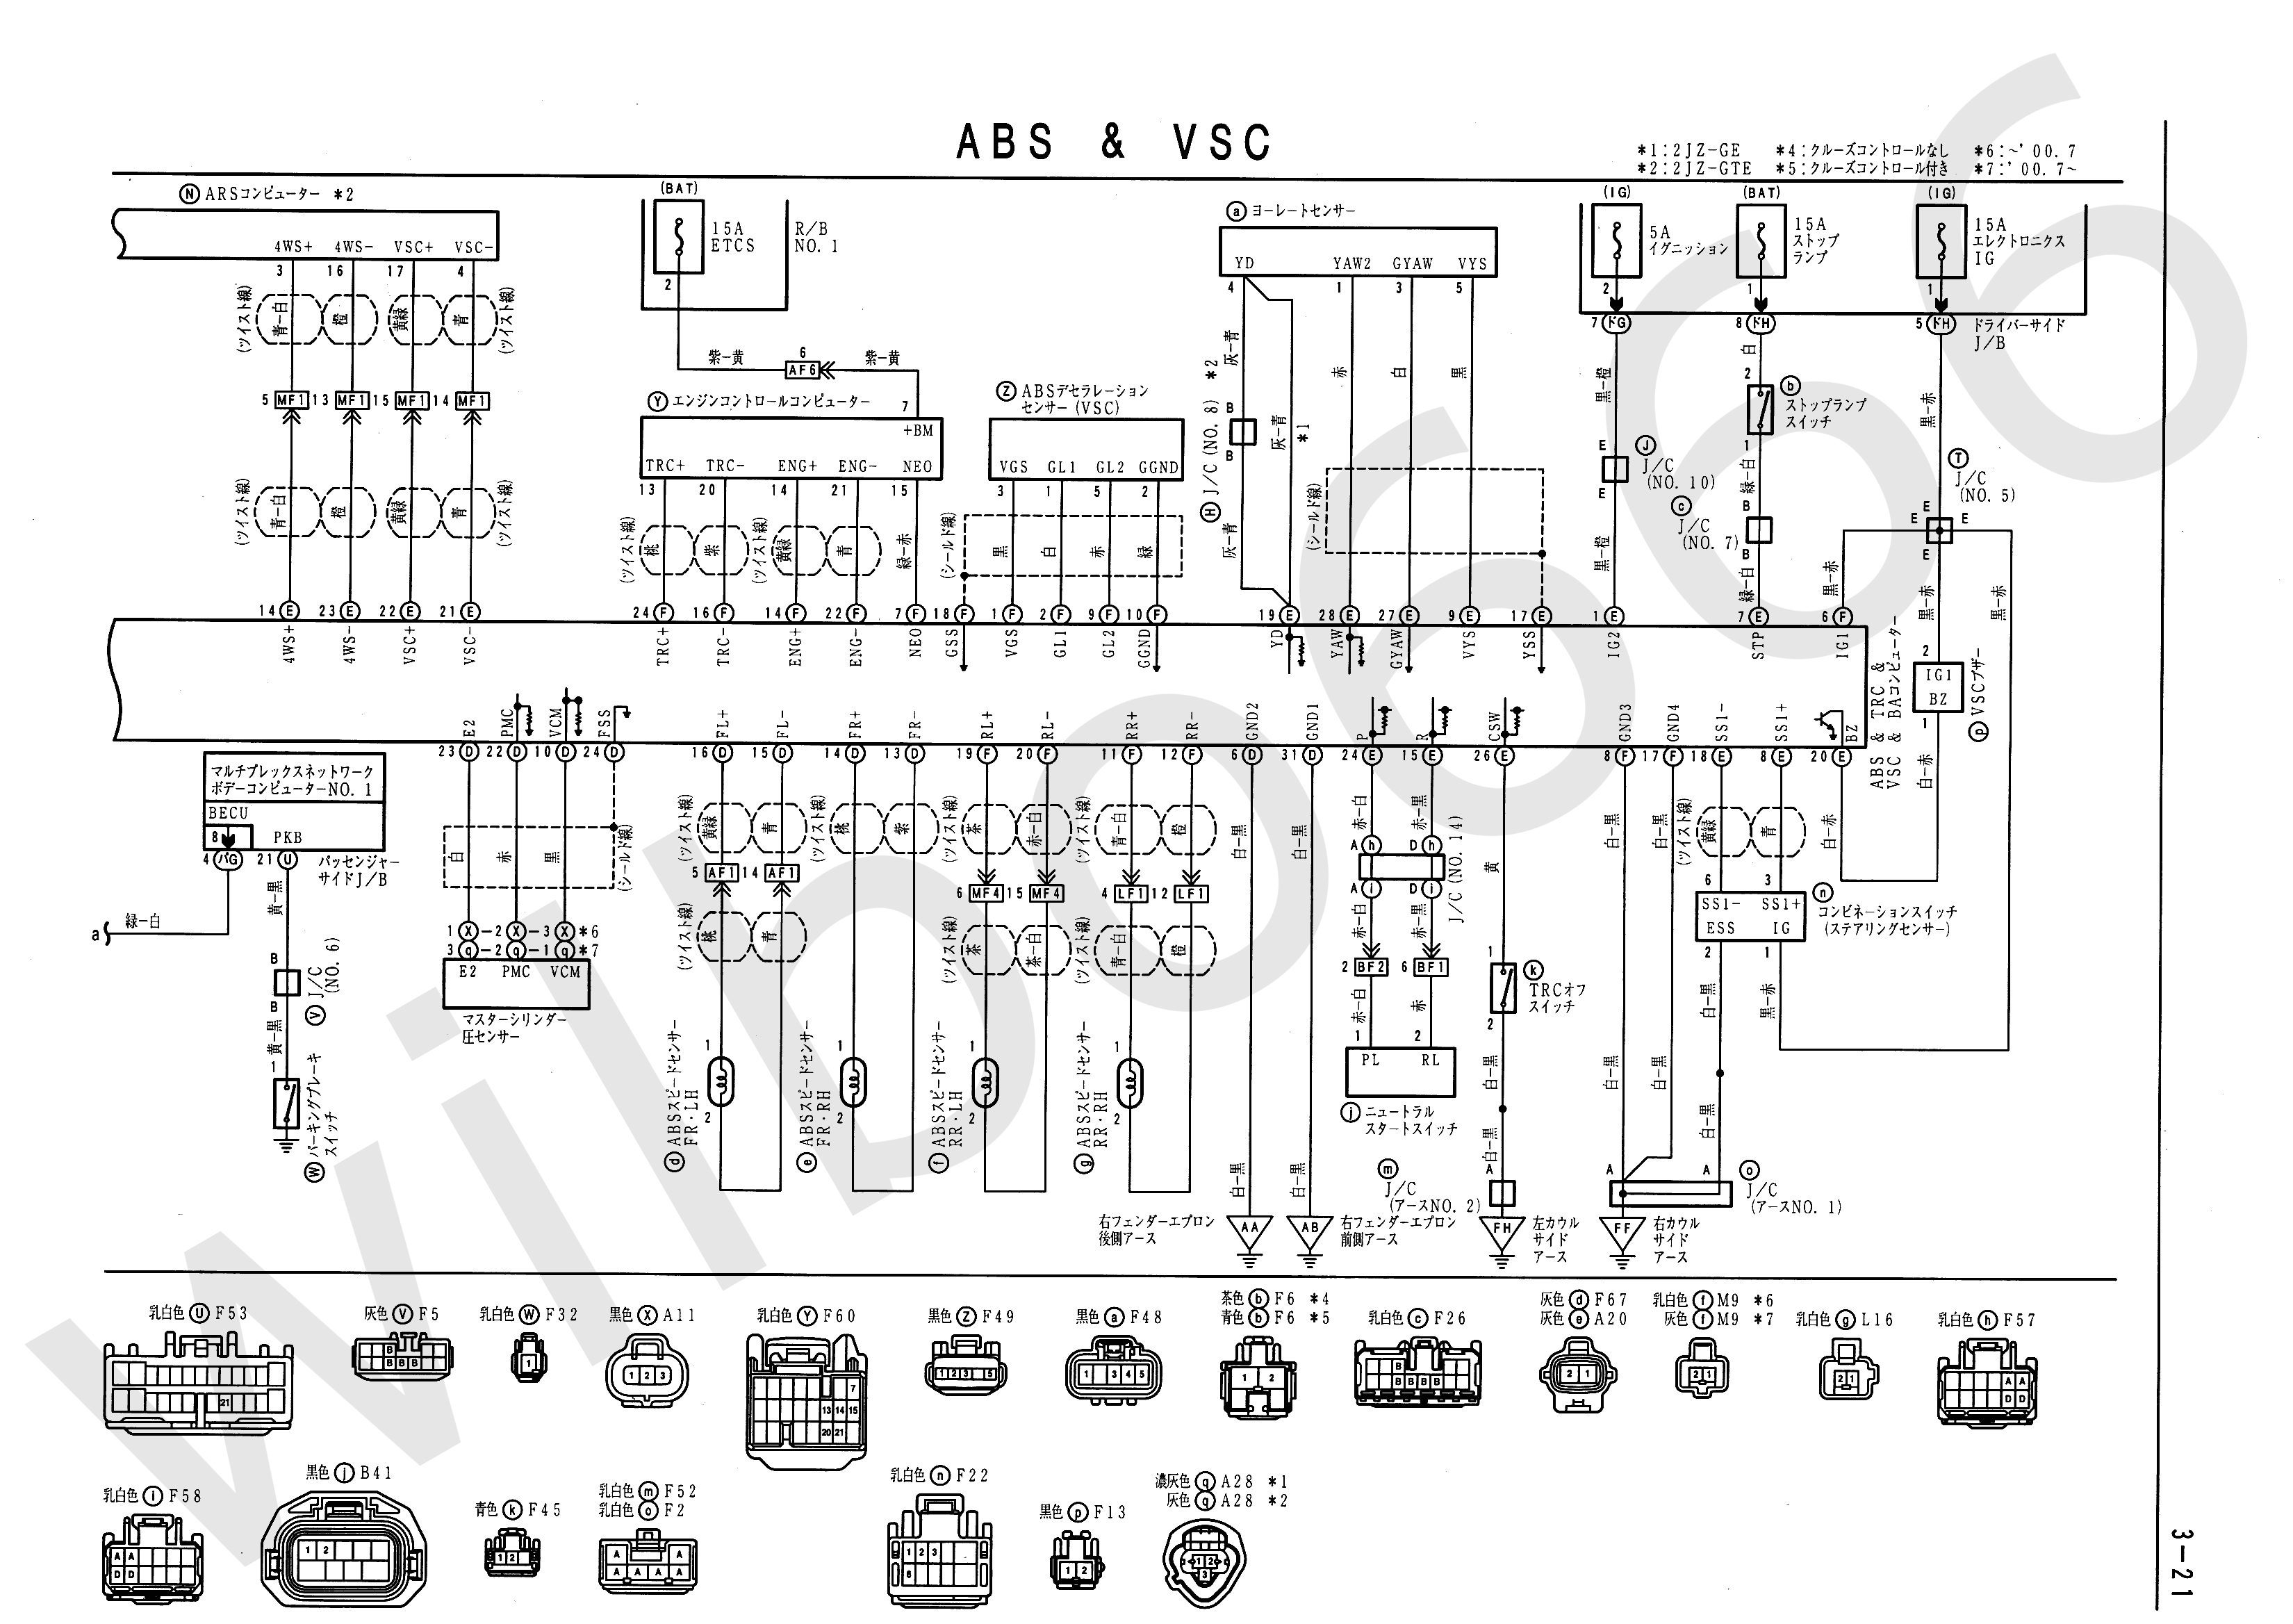 JZS161 Electrical Wiring Diagram 6748505 3 21?resize\\\\\\\\\\\\\\\=665%2C471 model a wiring diagram & model \\\